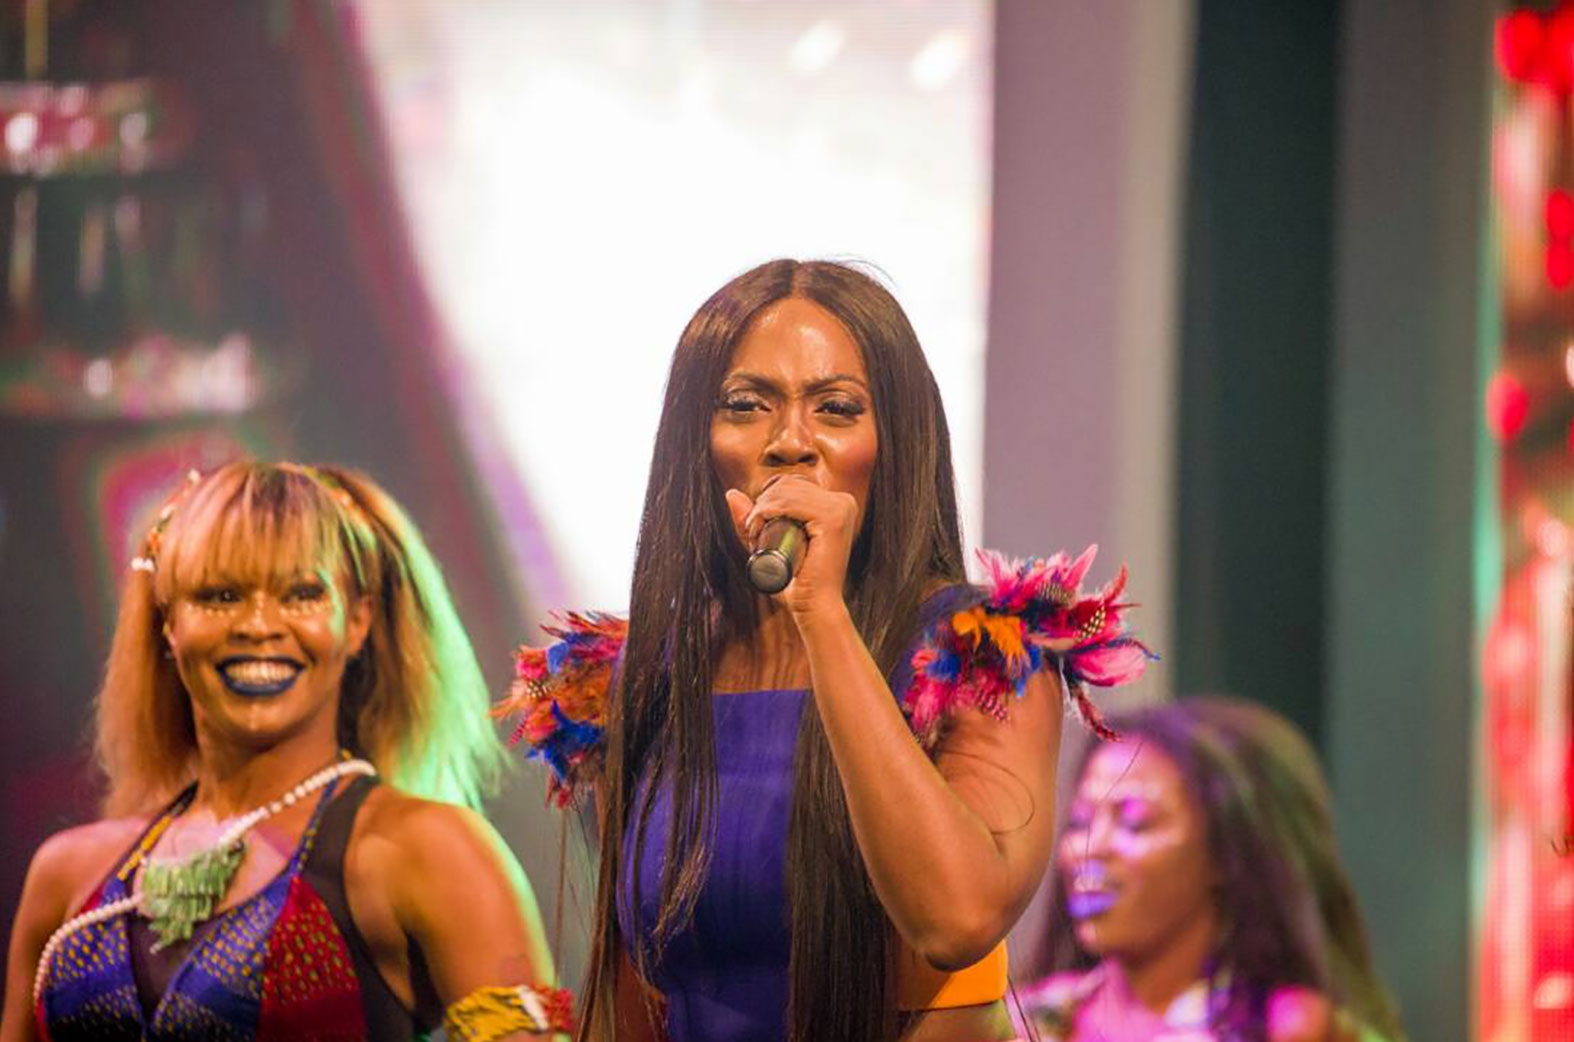 Tiwa Savage performing at Ghana Meets Naija 2017